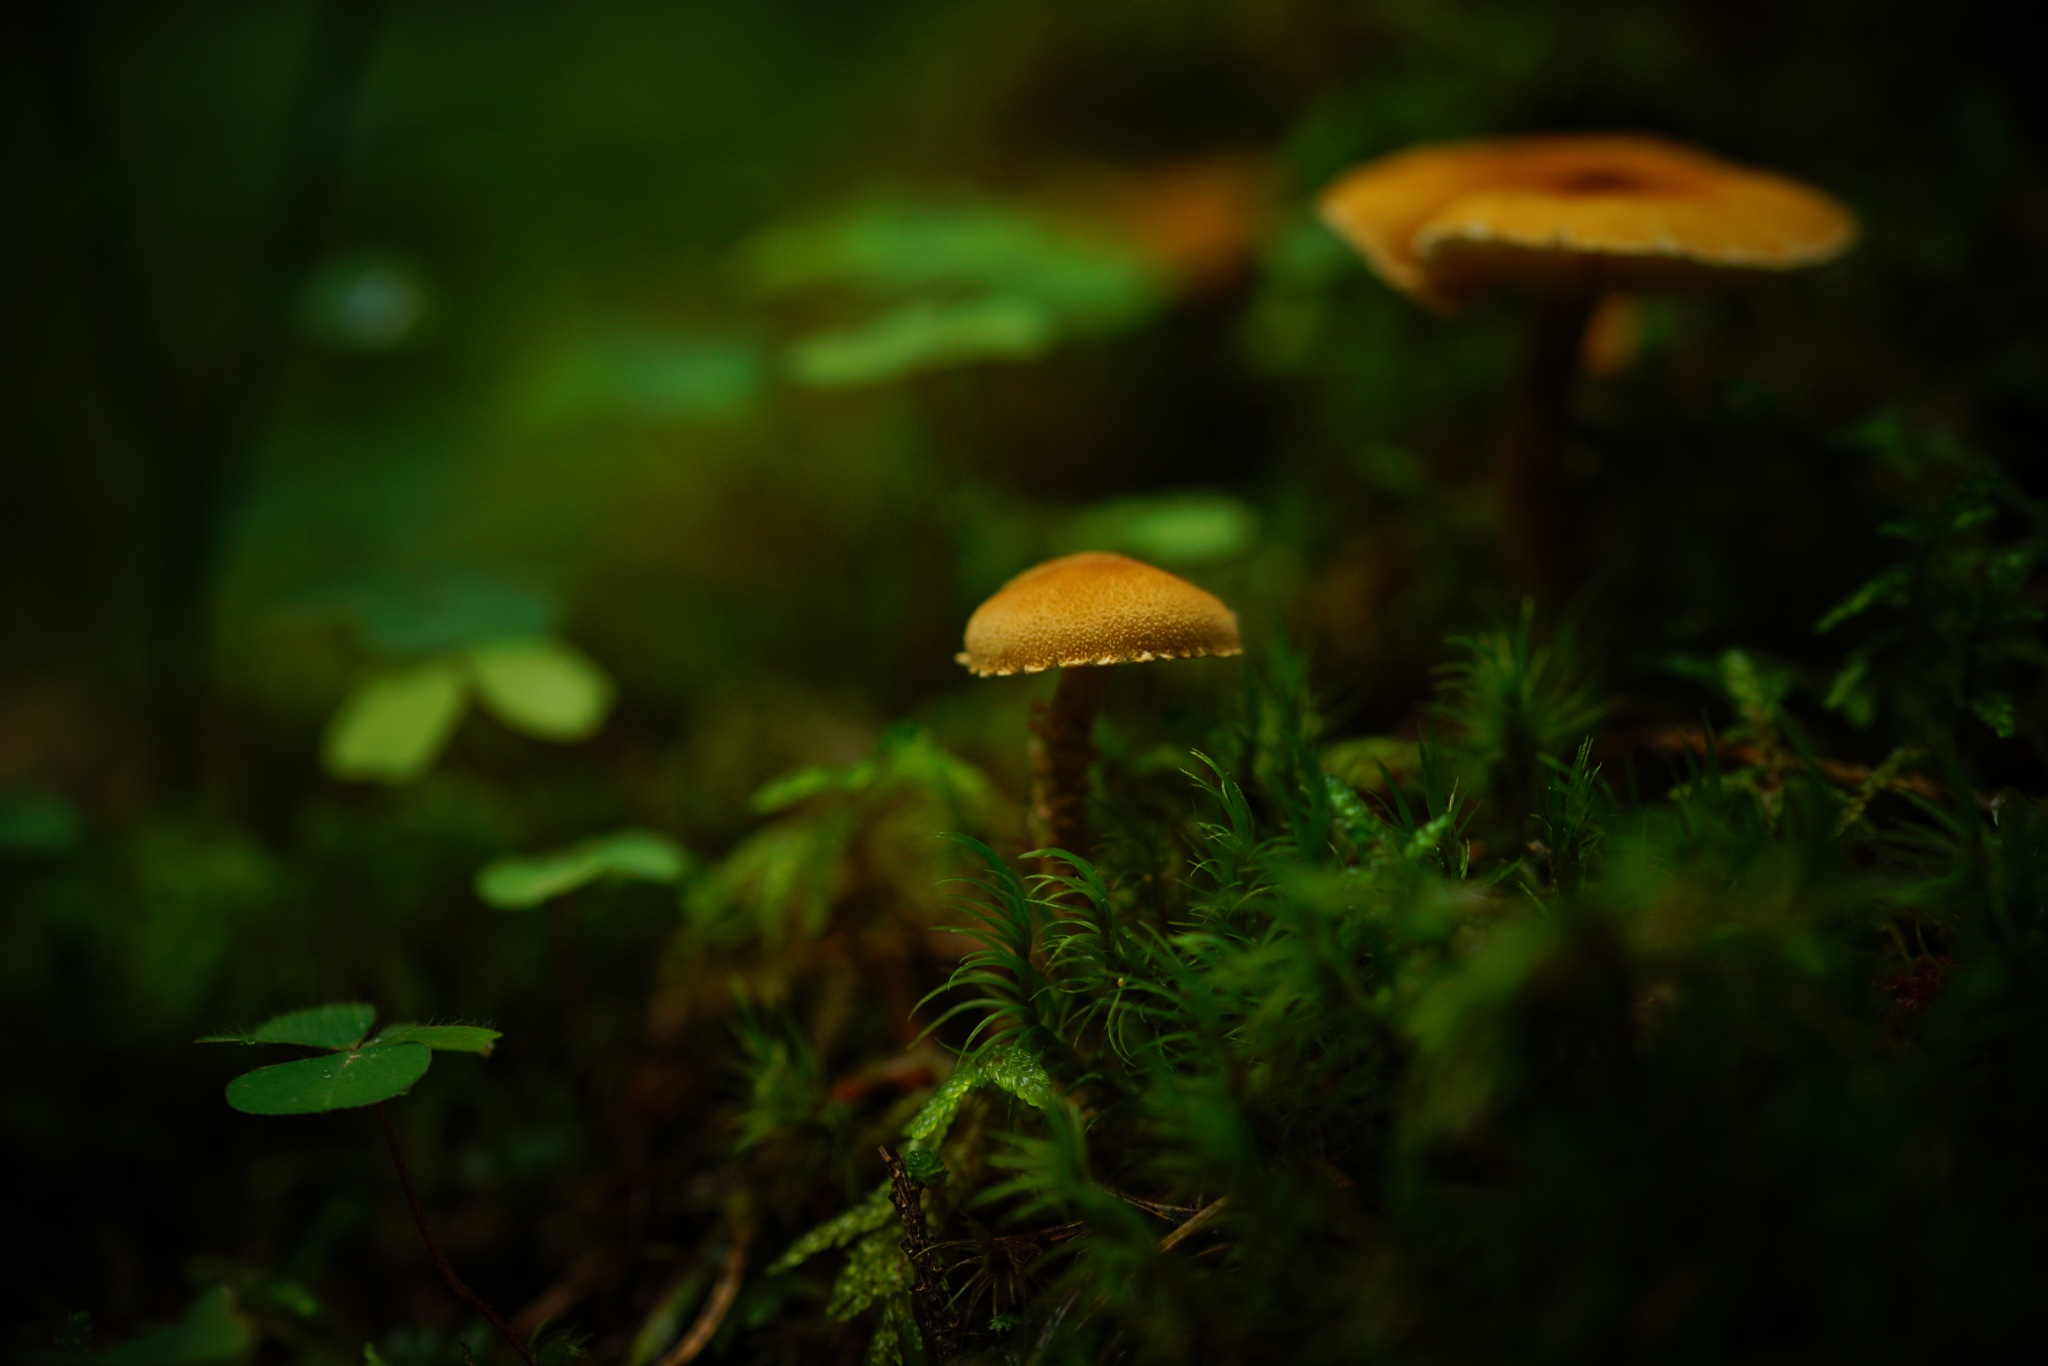 Deeps Forrest mushrooms by Andreas Karlsson